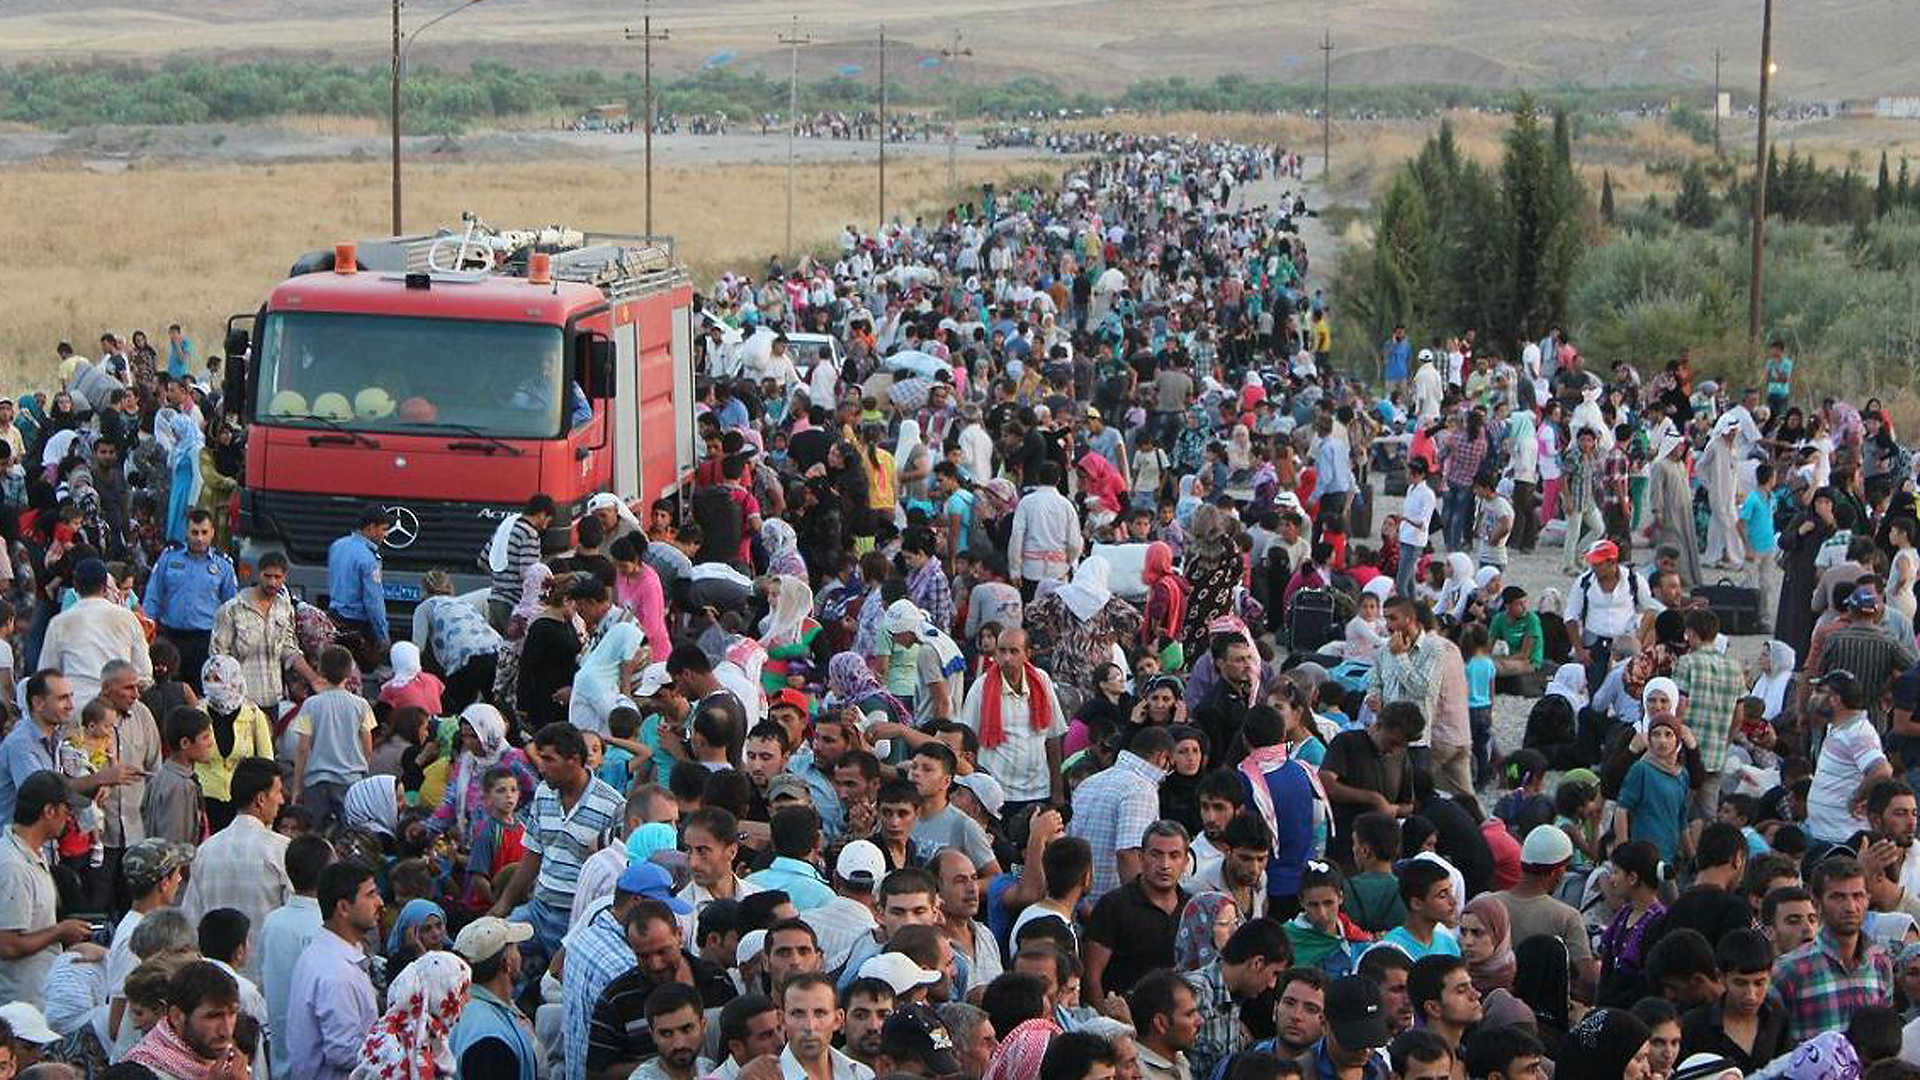 Refugee crisis: two views on this humanitarian catastrophe.